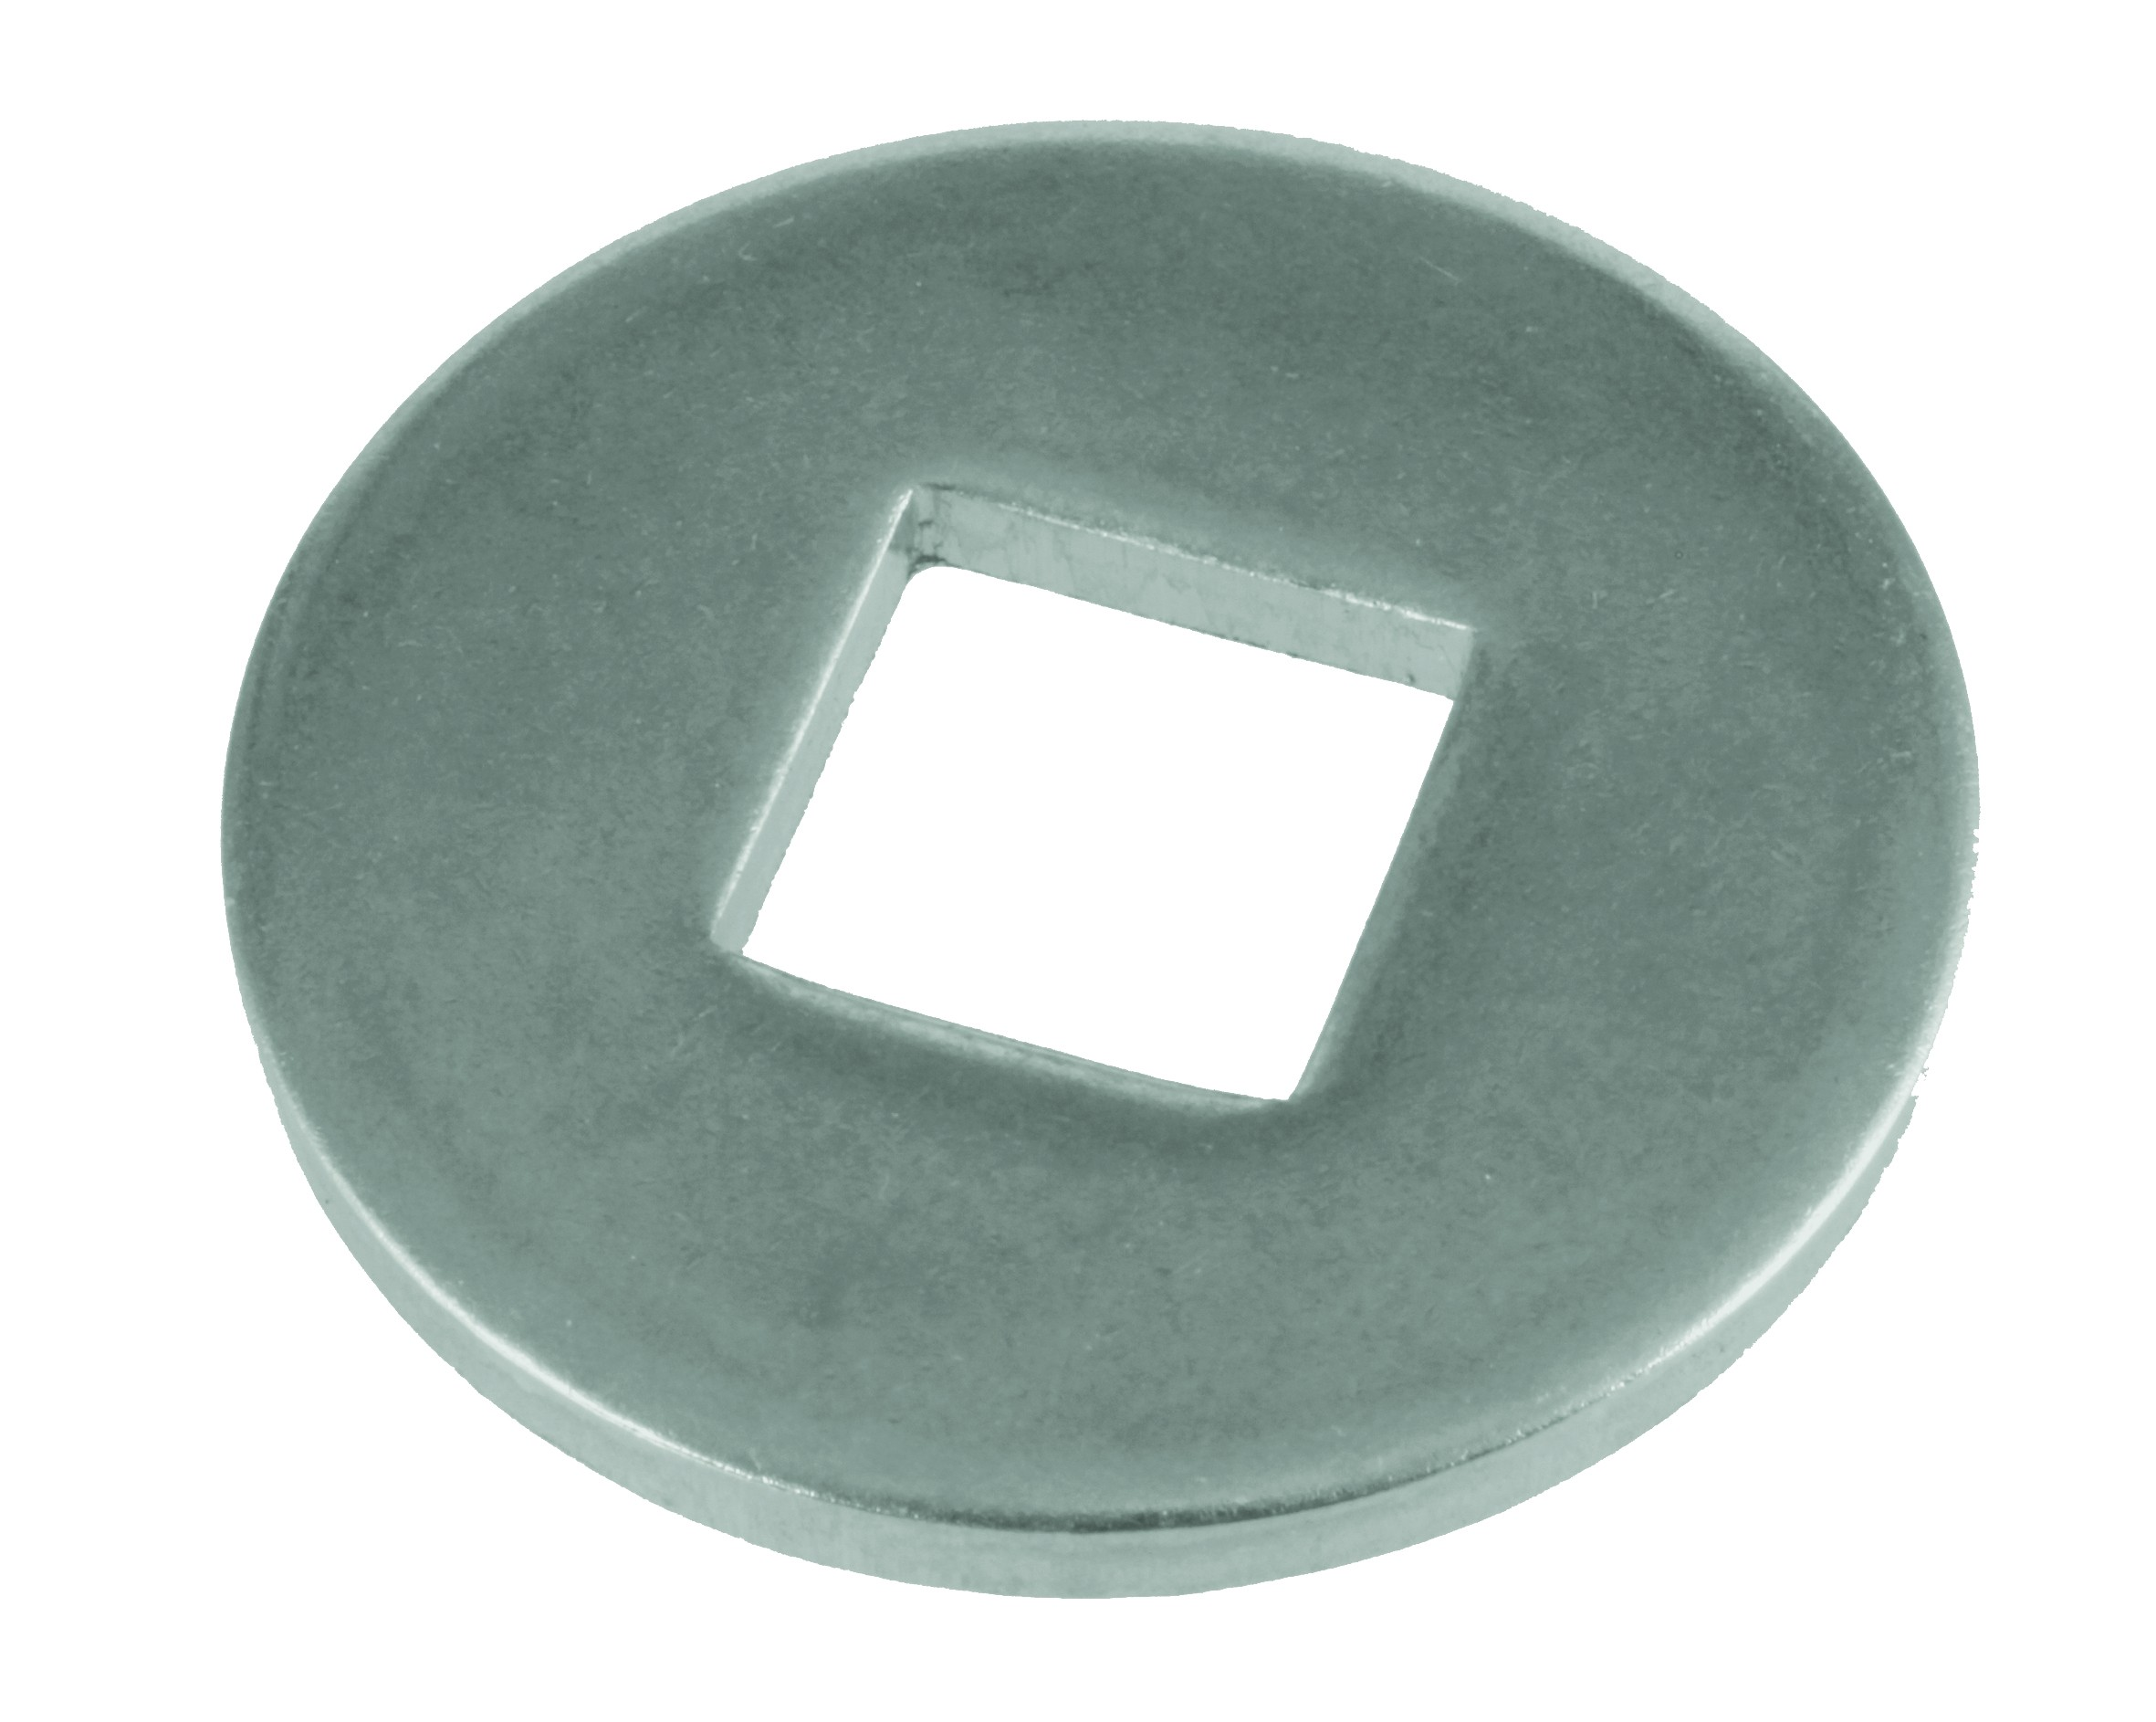 RONDELLE PLATE CHARPENTE DIN 440 ISO 7094 TYPE V INOX A2